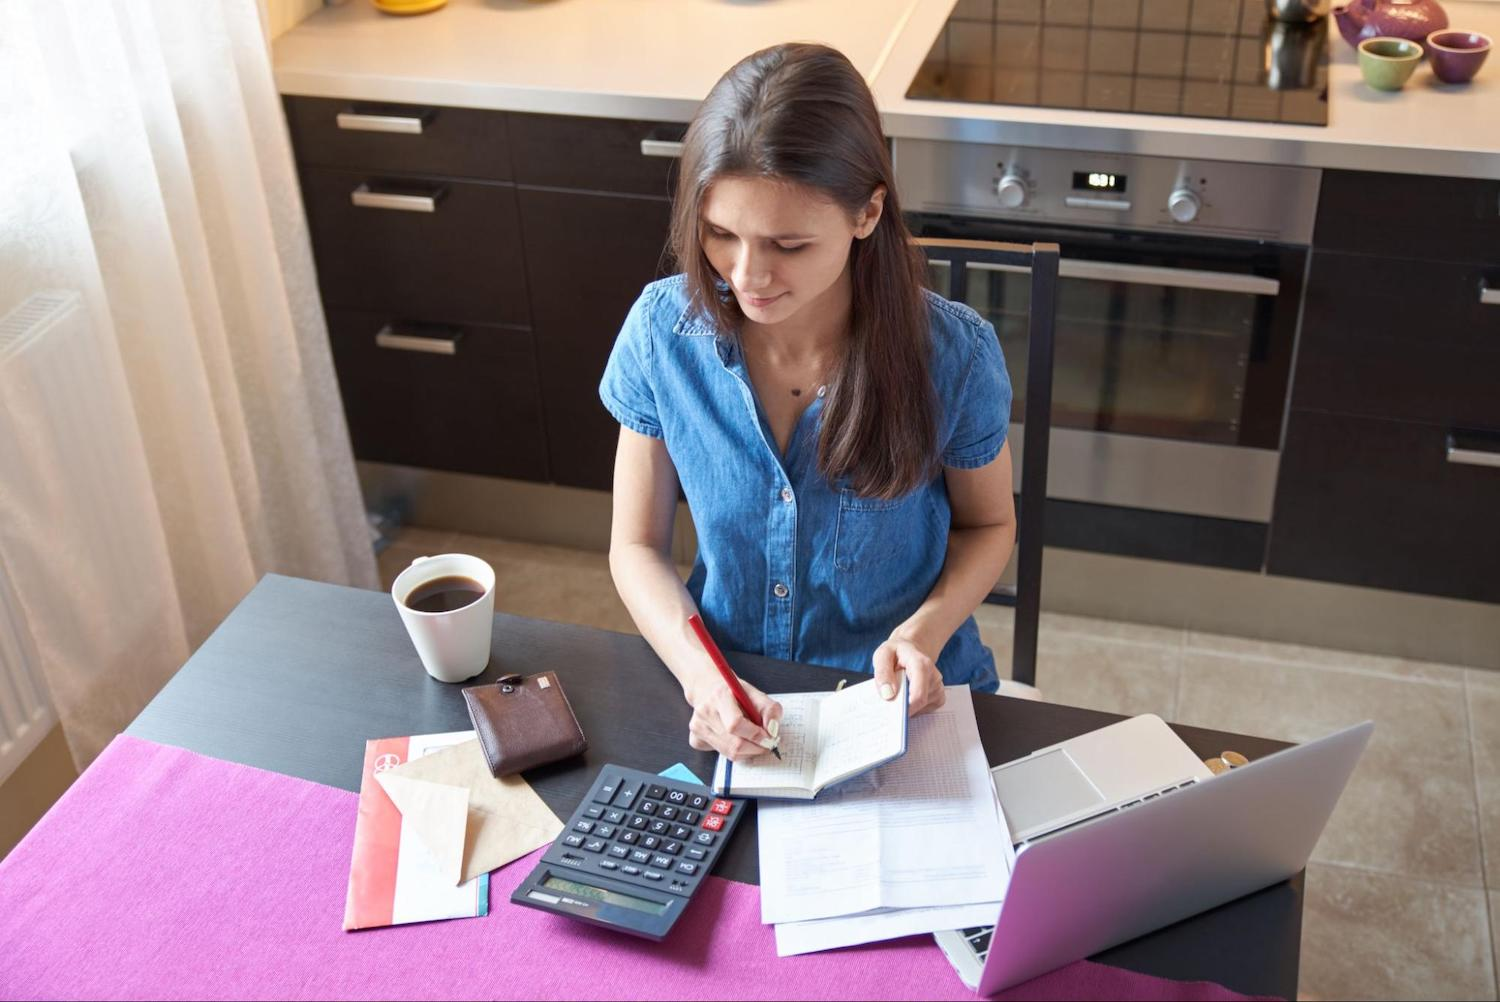 A woman uses a calculator to plan her budget